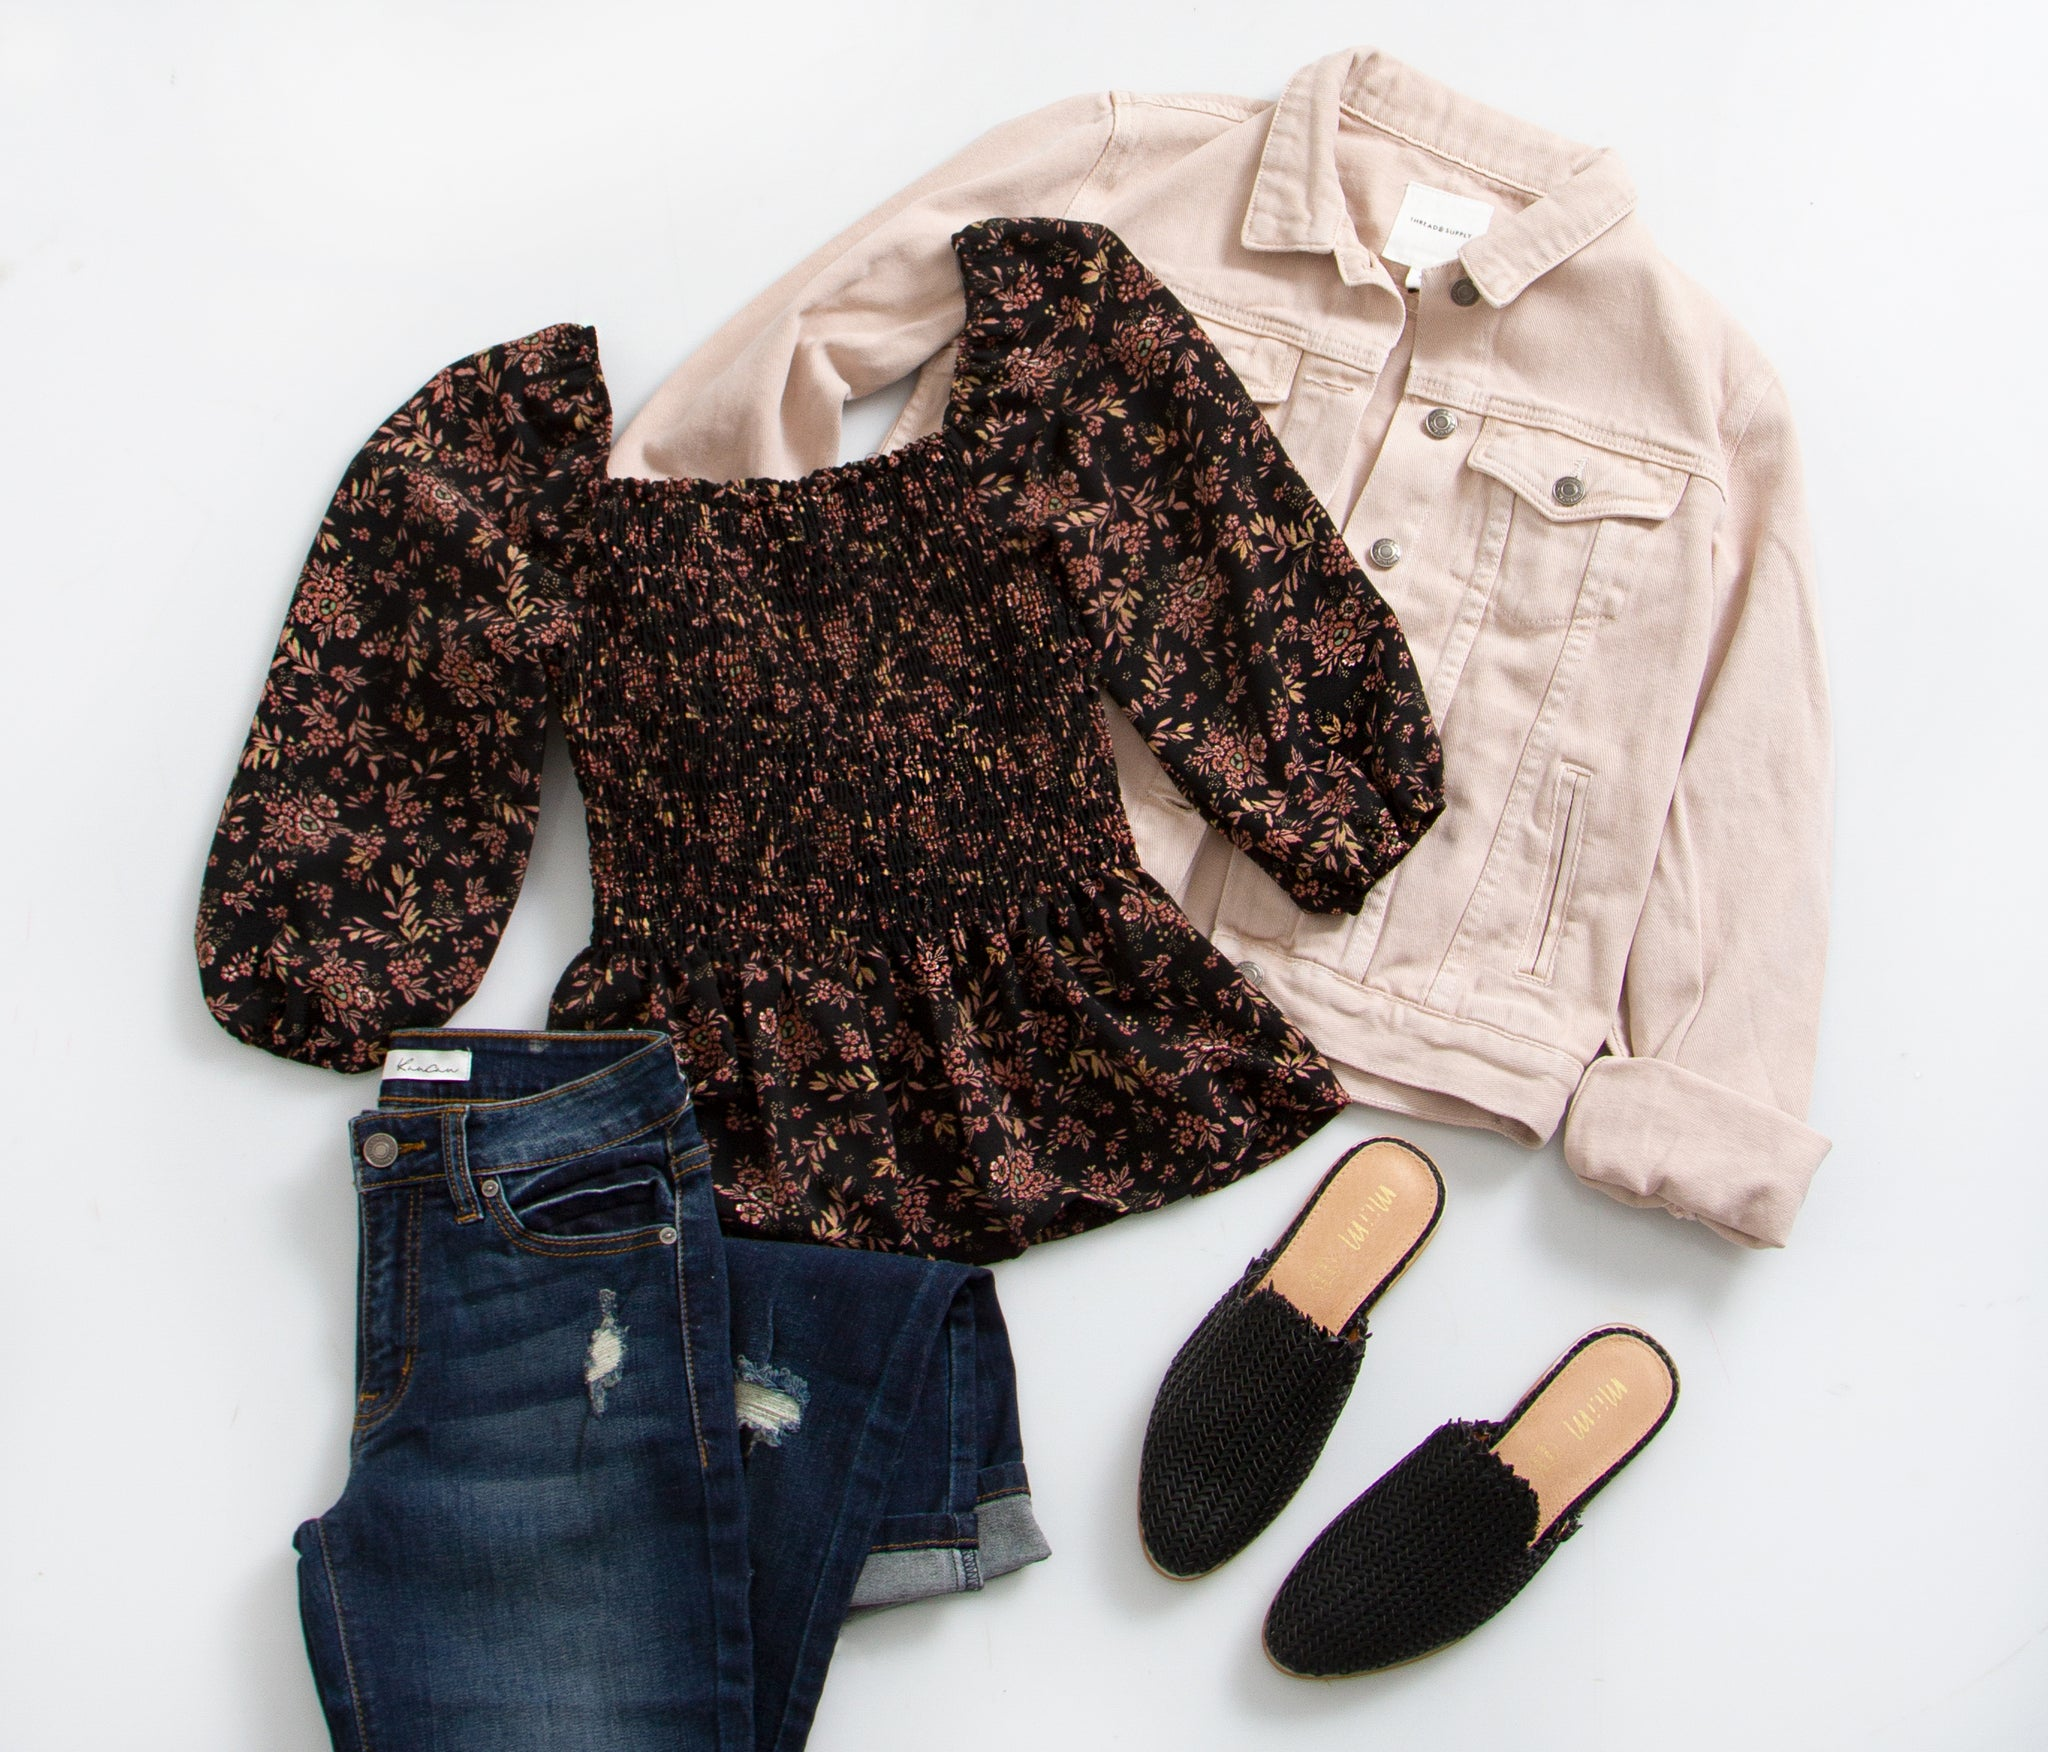 Everly Blouse Outfit